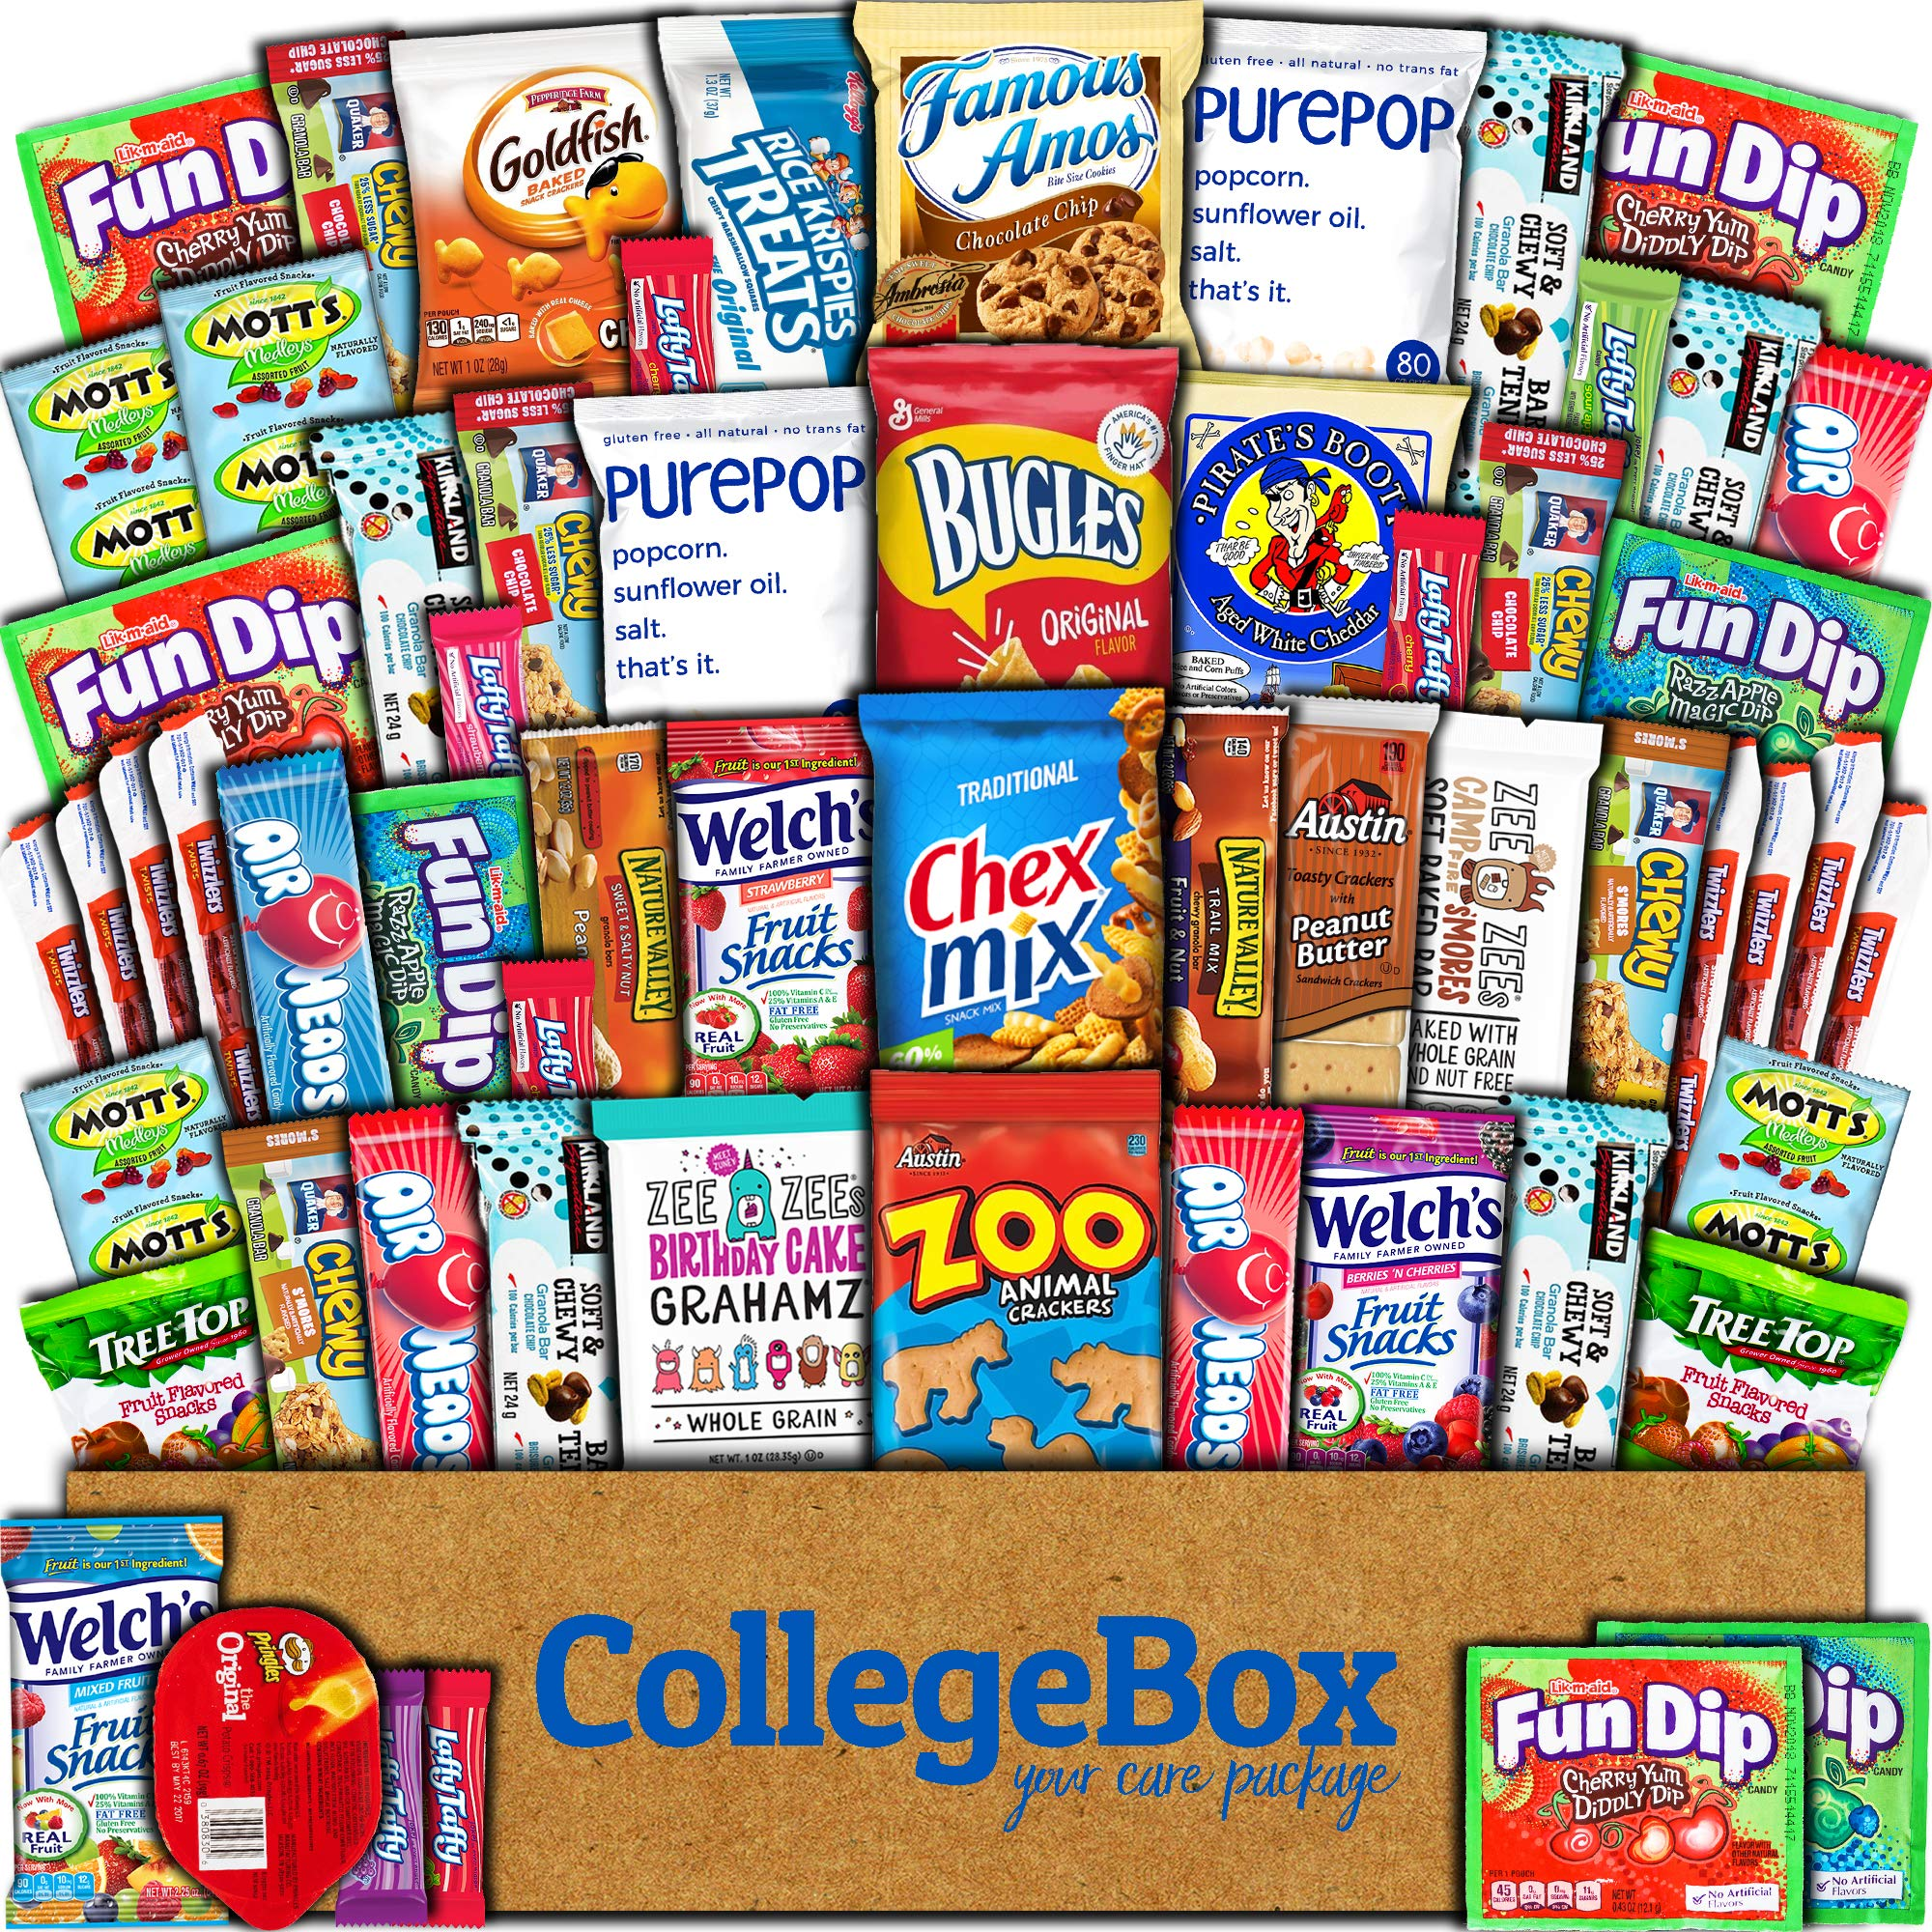 CDM product College Box Care Package (60 Count) Snacks Cookies Bars Chips Candy Ultimate Variety Gift Box Pack Assortment Basket Bundle Mixed Sampler Treats College Students Office Fall Back to School Halloween big image